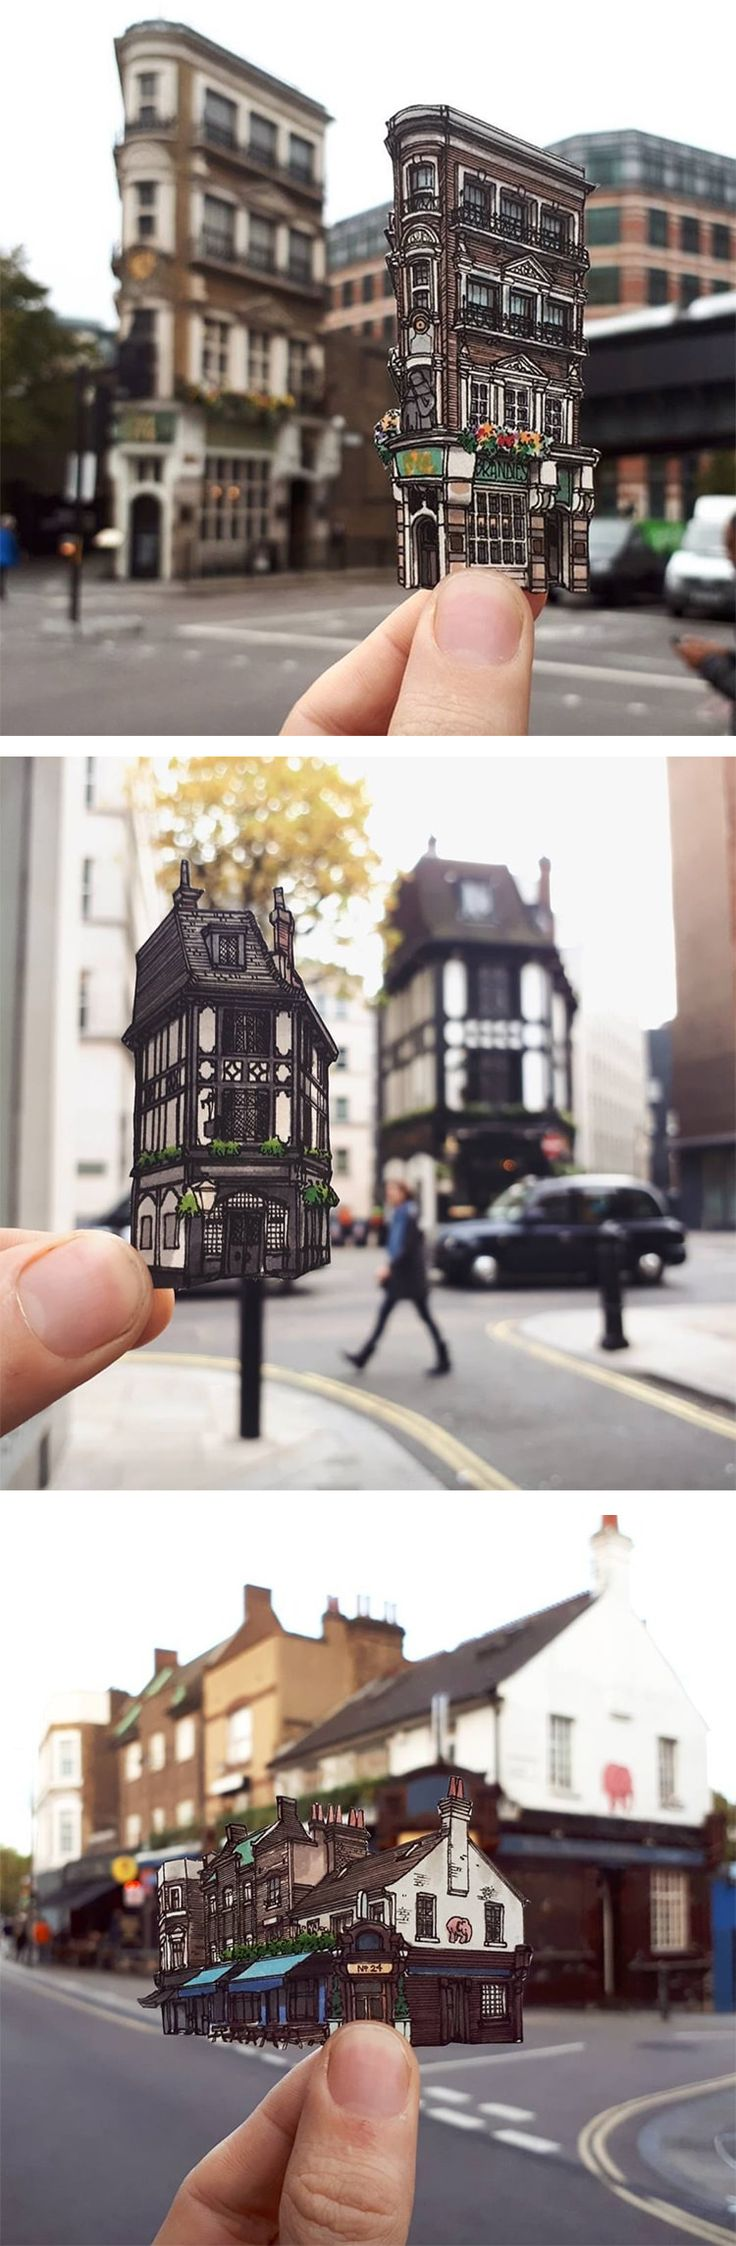 Illustrator Maxwell Tilse Captures London's oldest pubs in a series of cut-out pen and ink drawings.